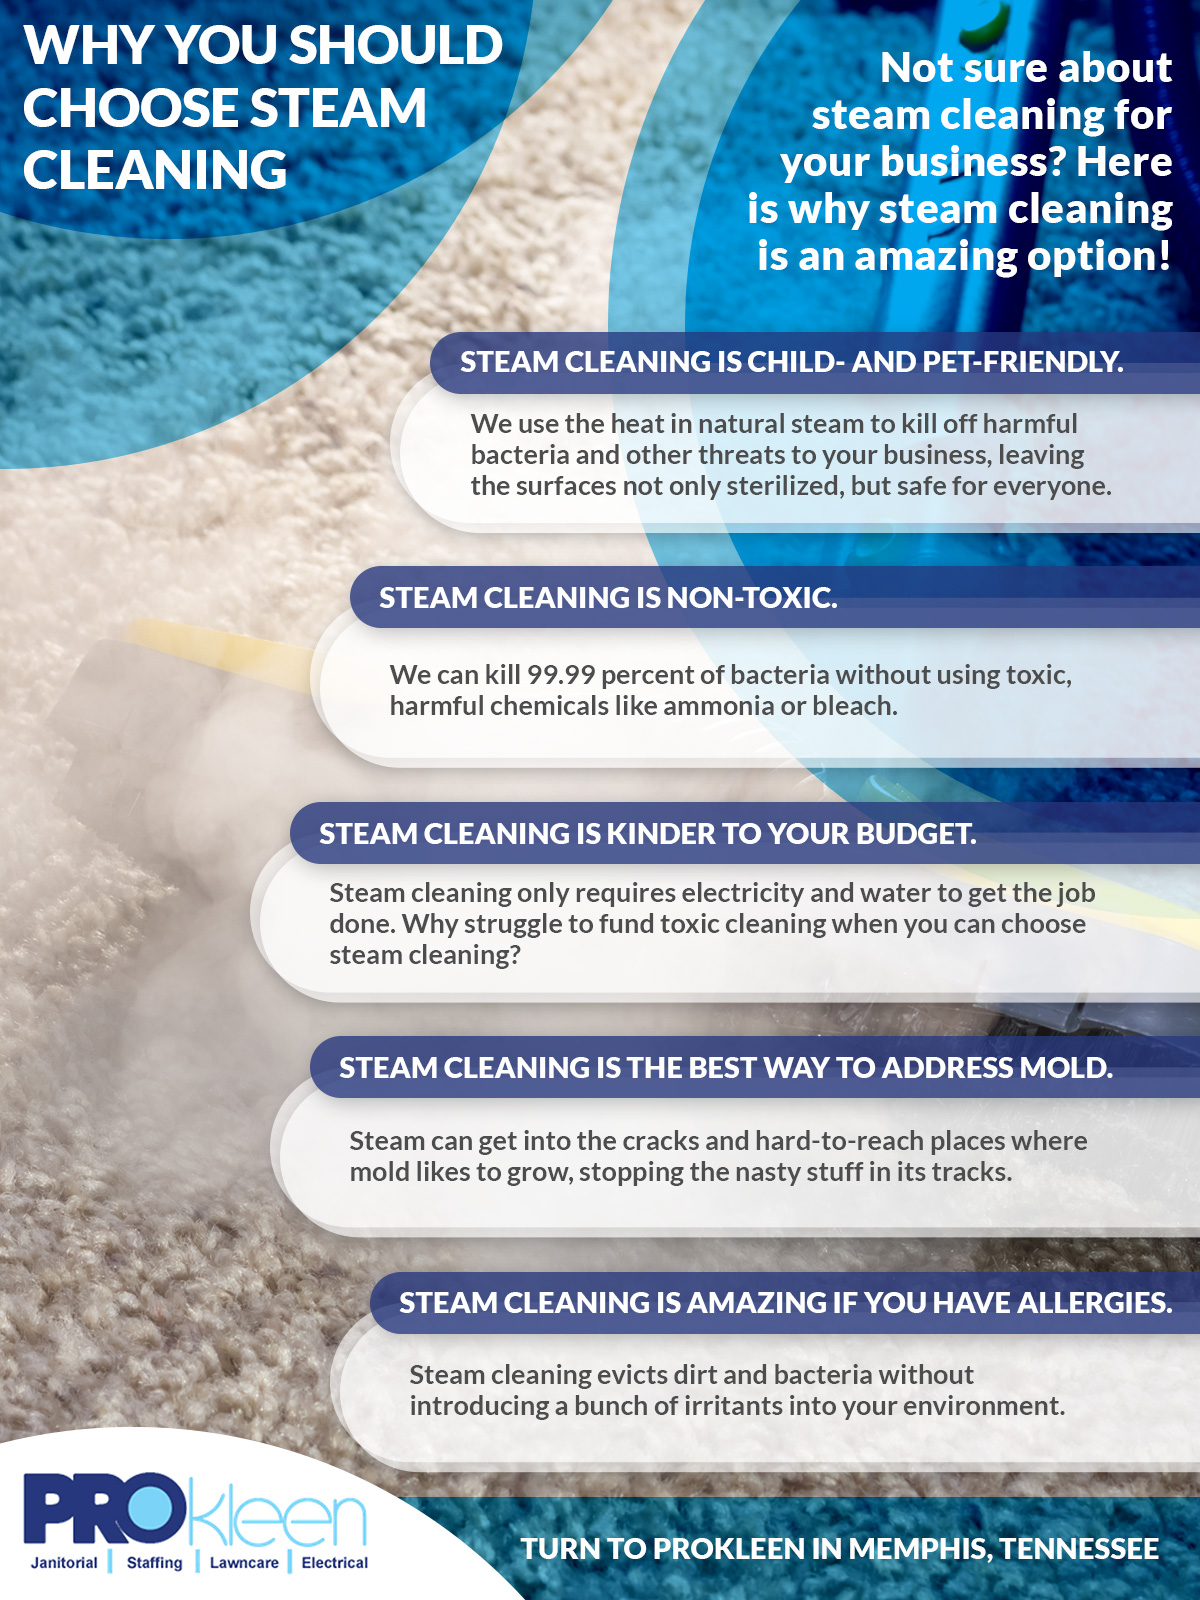 Janitorial Services Tennessee: Why You Should Choose Steam ...